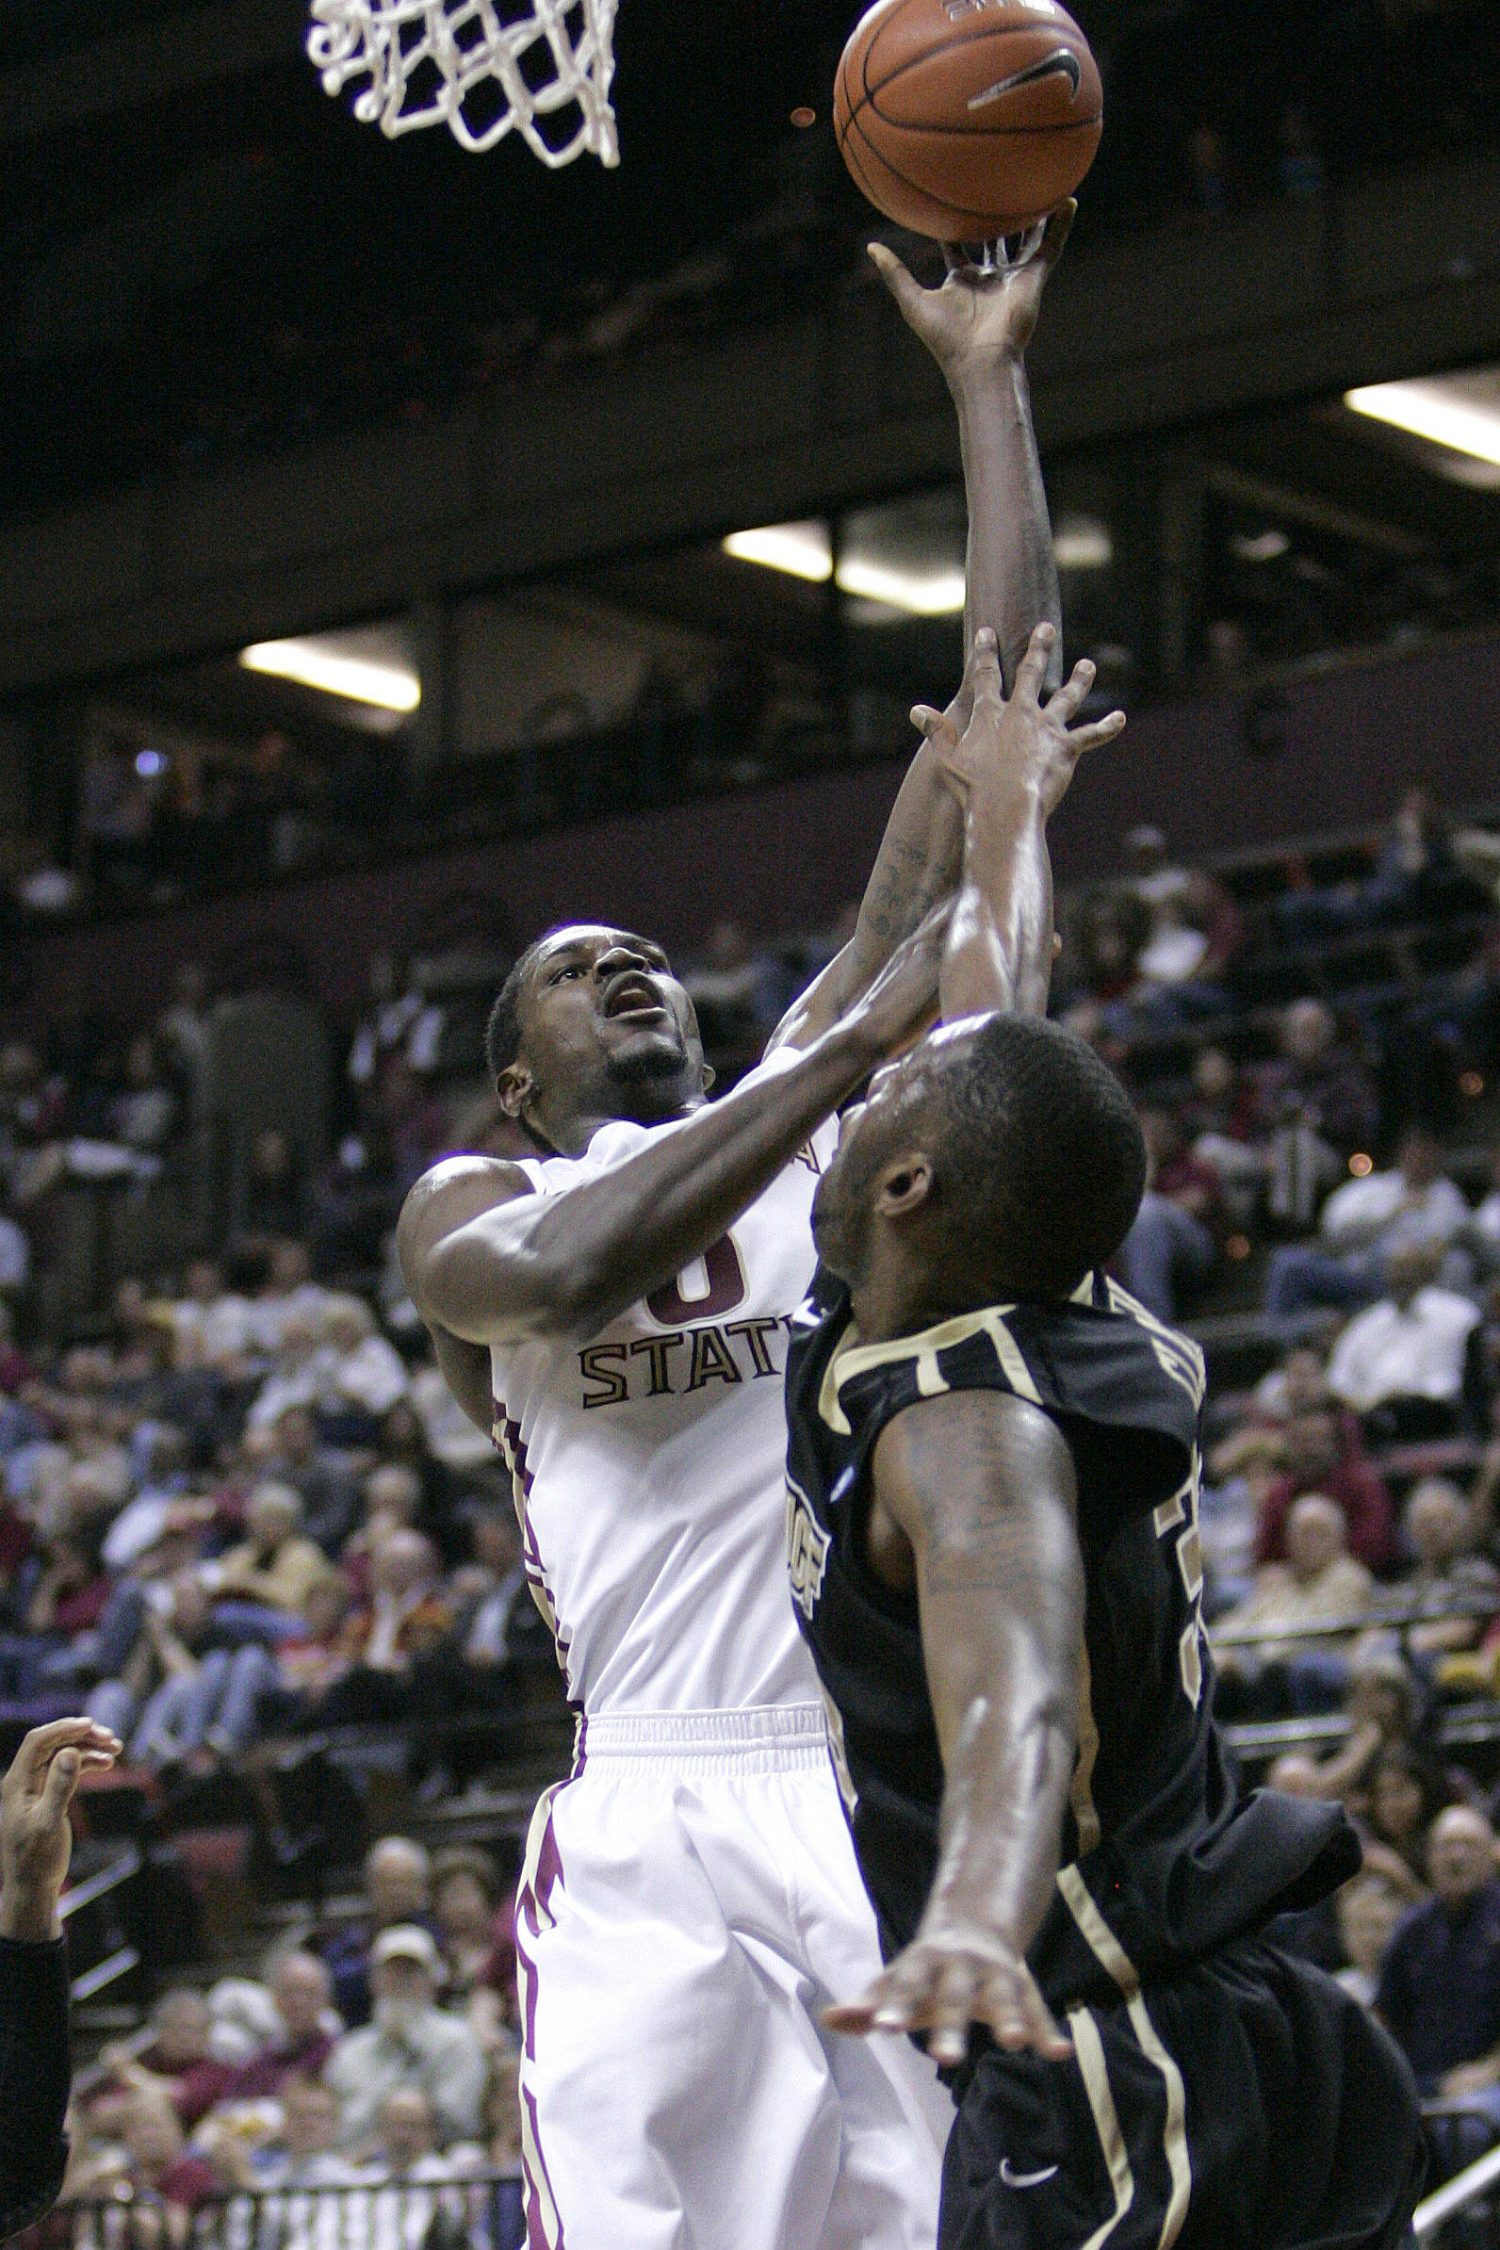 Florida State's Benard James scores over the defense of  Central Florida's Keith Clanton in the first half of an NCAA college basketball game which Florida State won 73-50 on Monday, Nov. 14, 2011, in Tallahassee, Fla.(AP Photo/Steve Cannon)